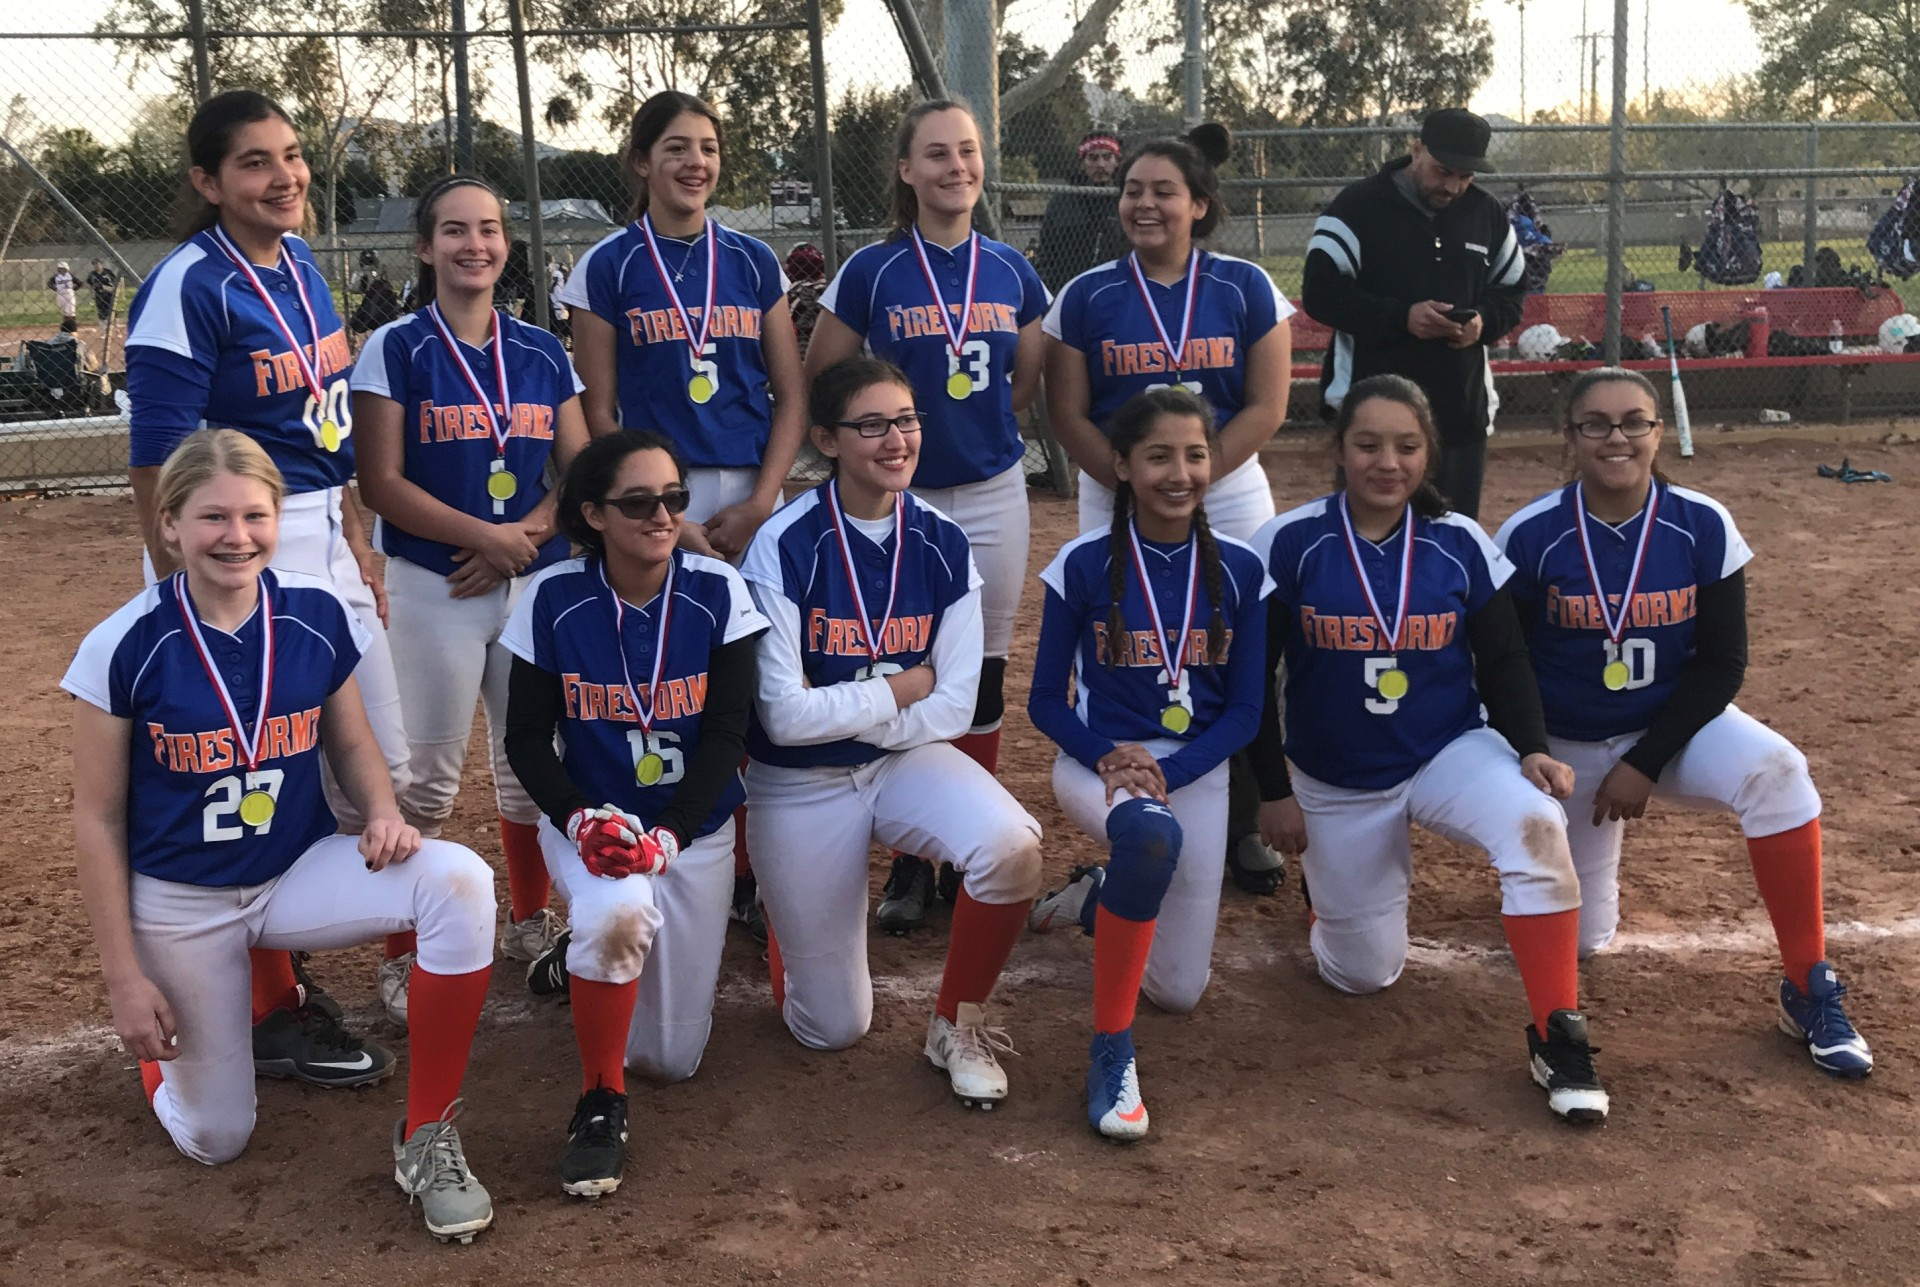 14u - Runner Up - Firestormz - Pena